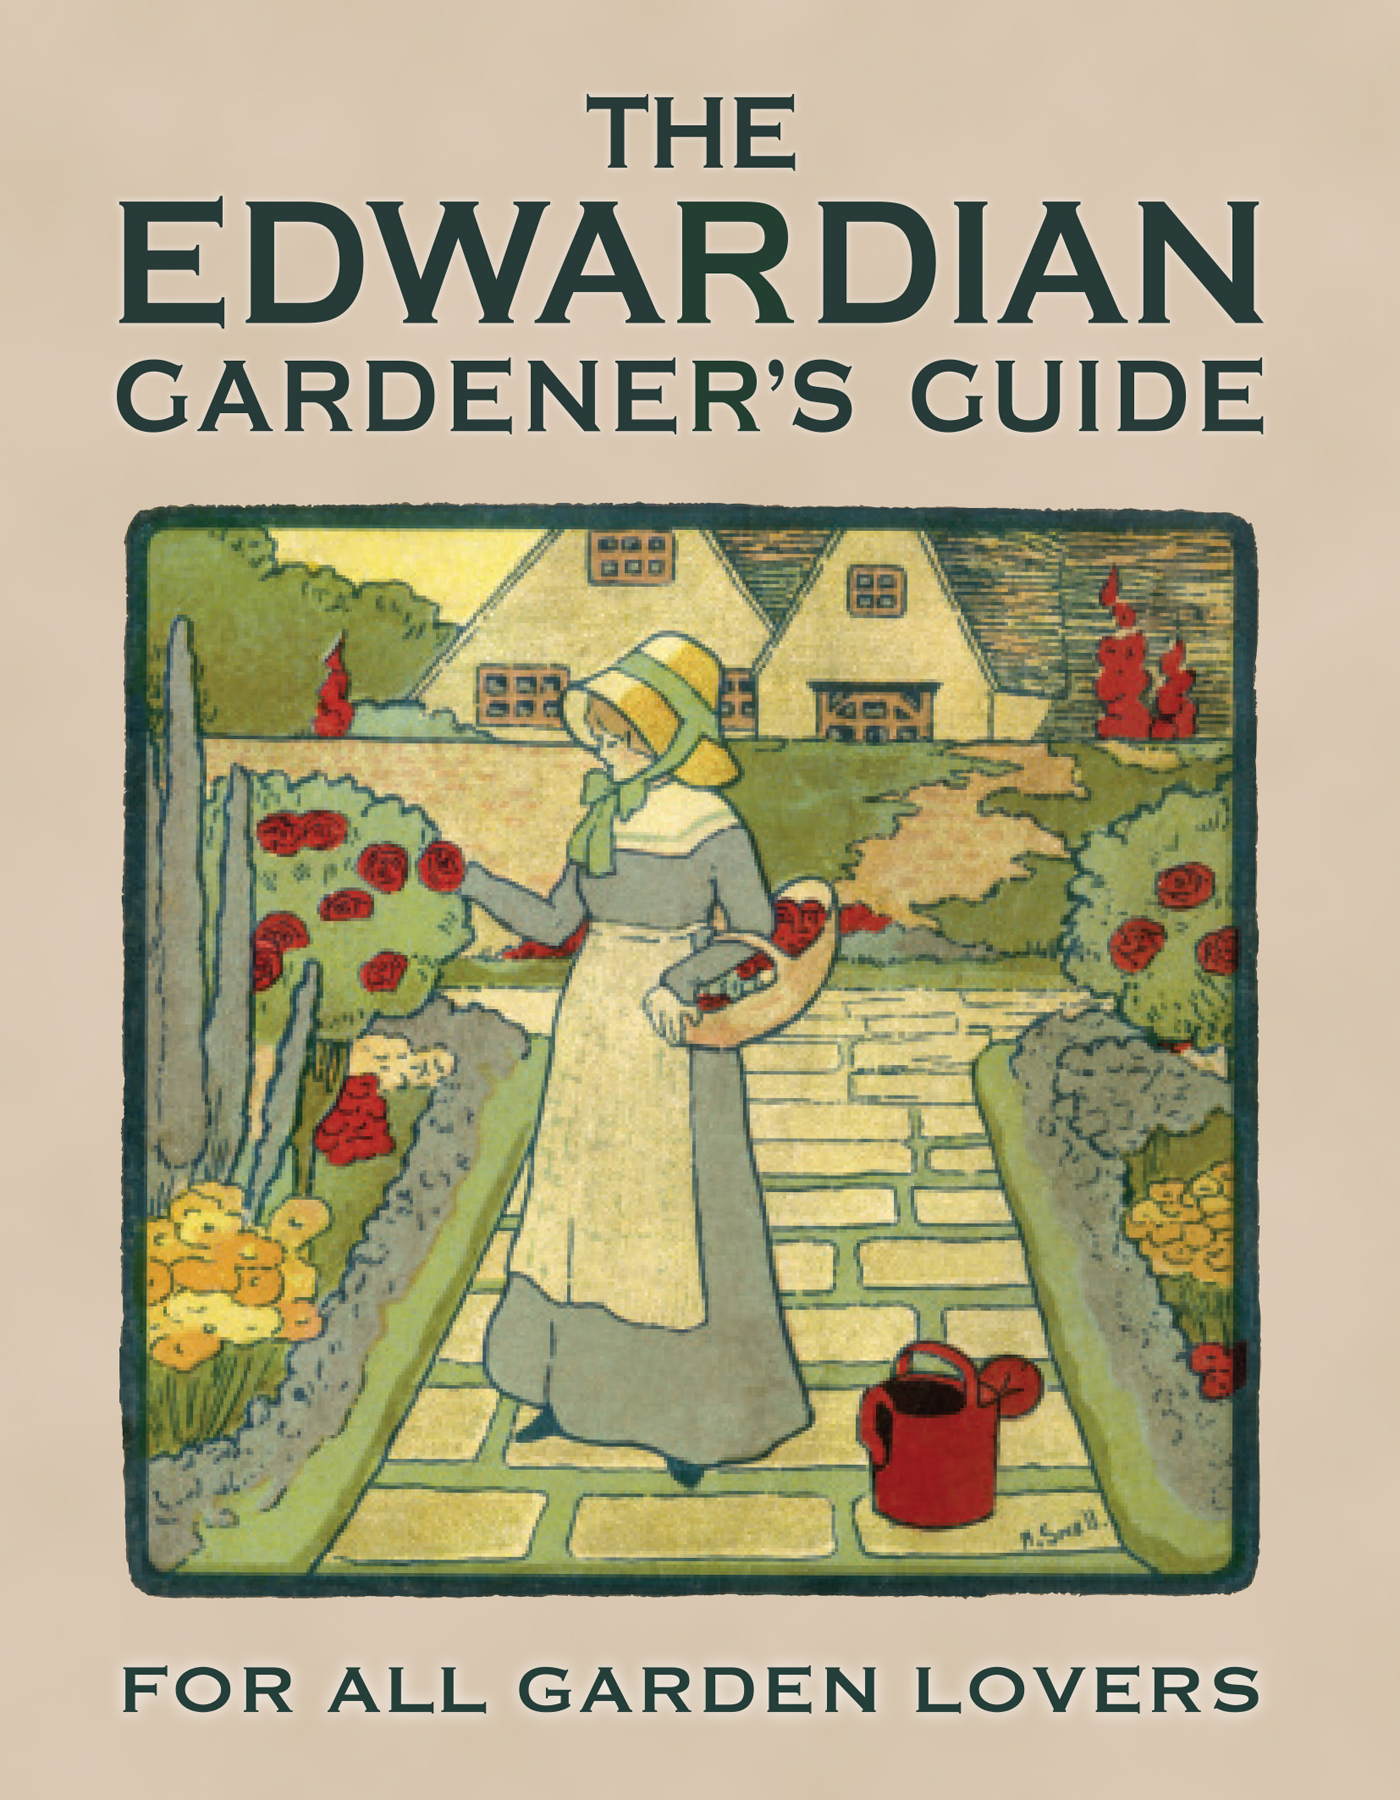 The Edwardian Gardener's Guide: For All Garden Lovers